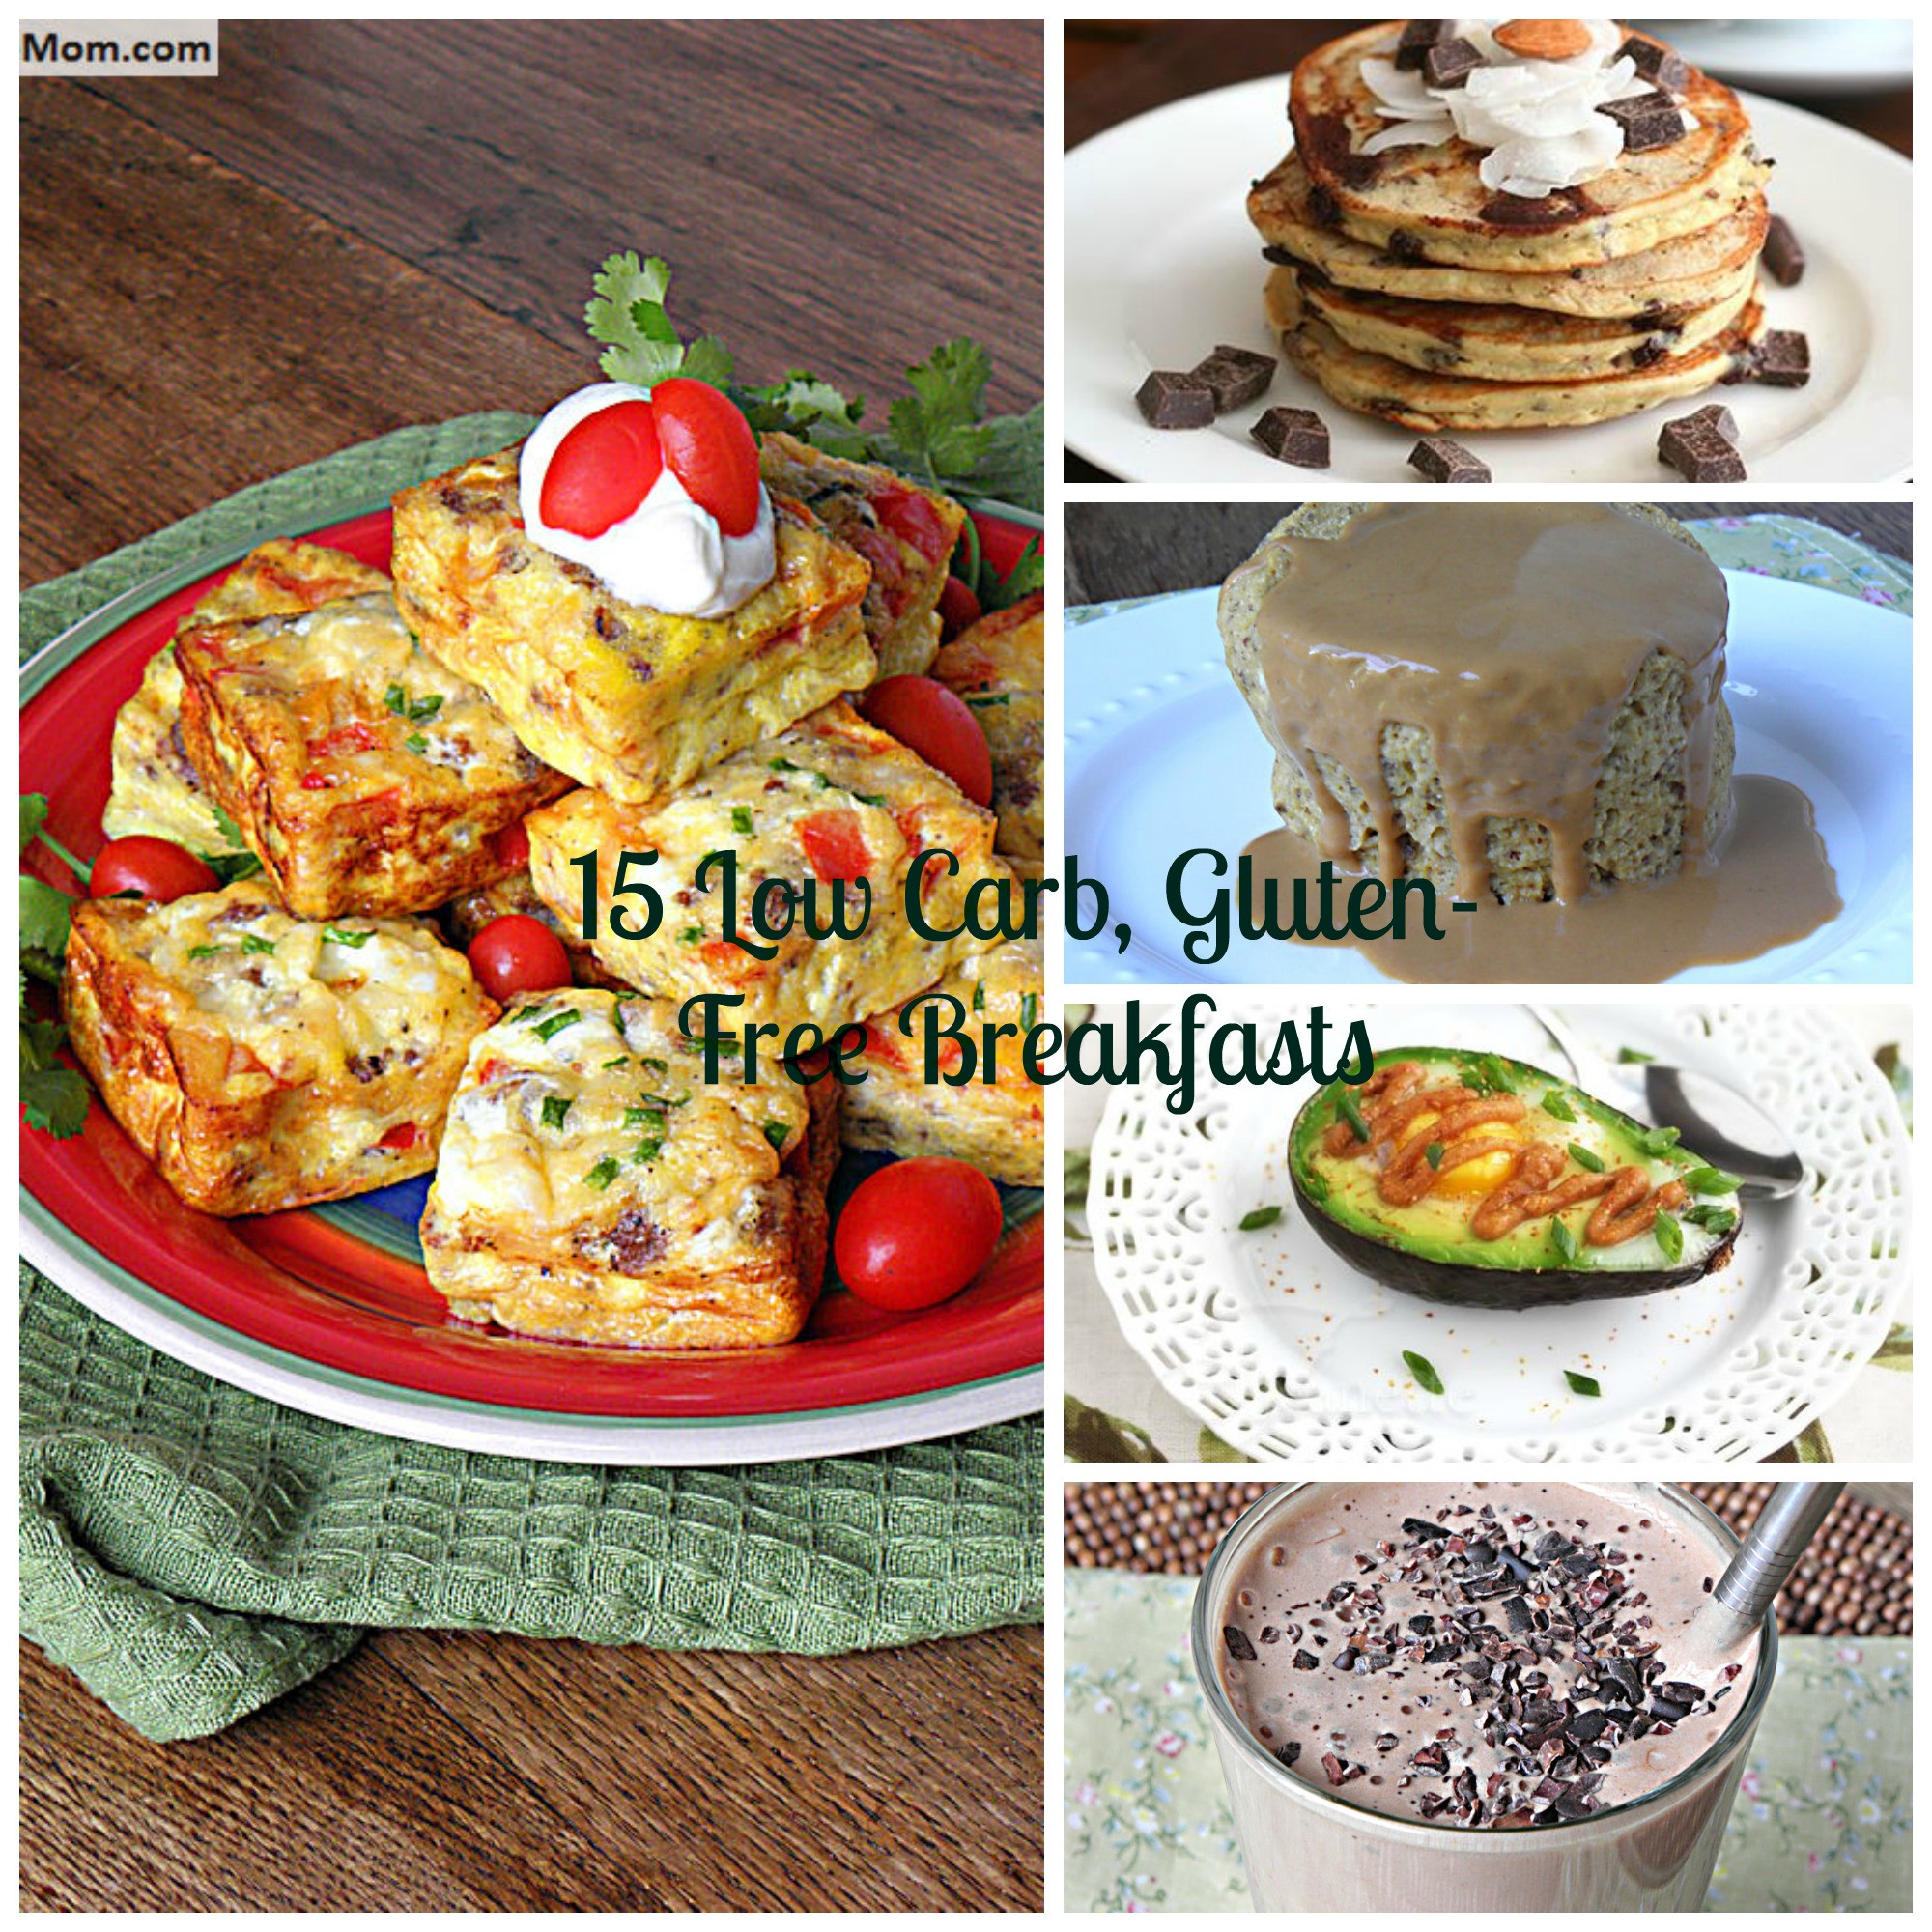 Diabetic Breakfast Recipes  15 Gluten Free Low Carb & Diabetic Friendly Breakfast Recipes